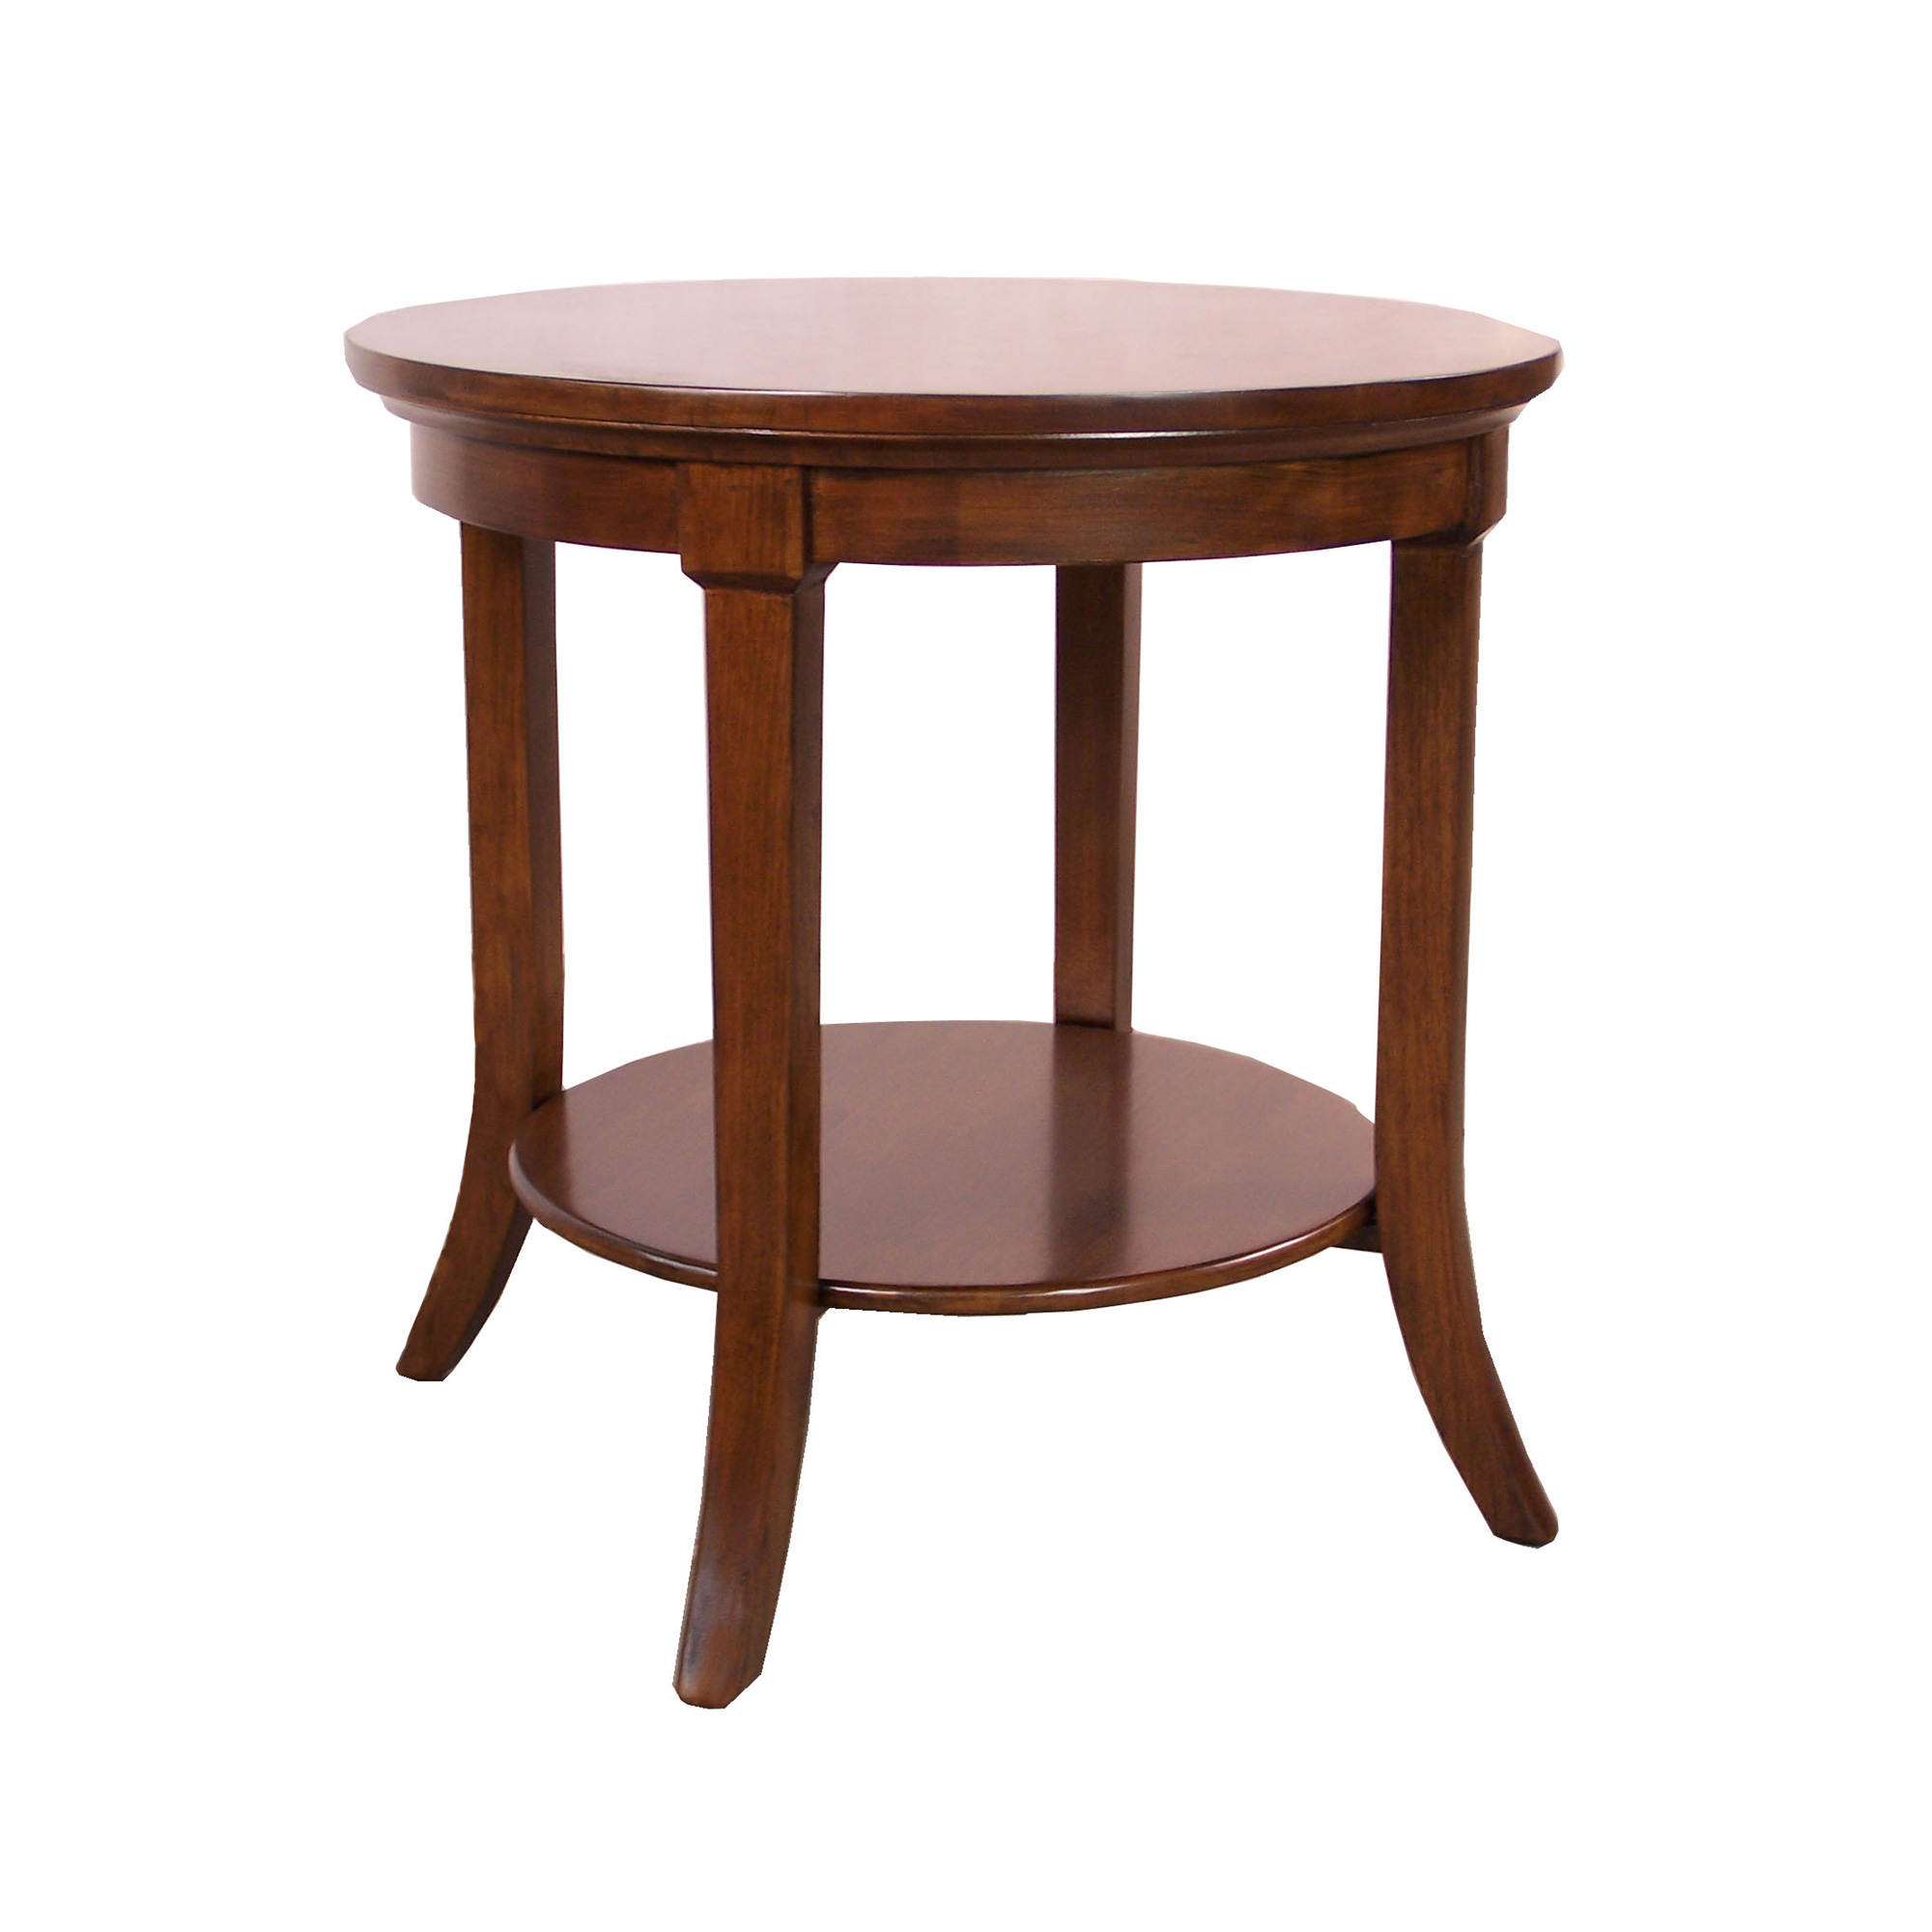 Maria Yee Montecito Round Table With Shelf